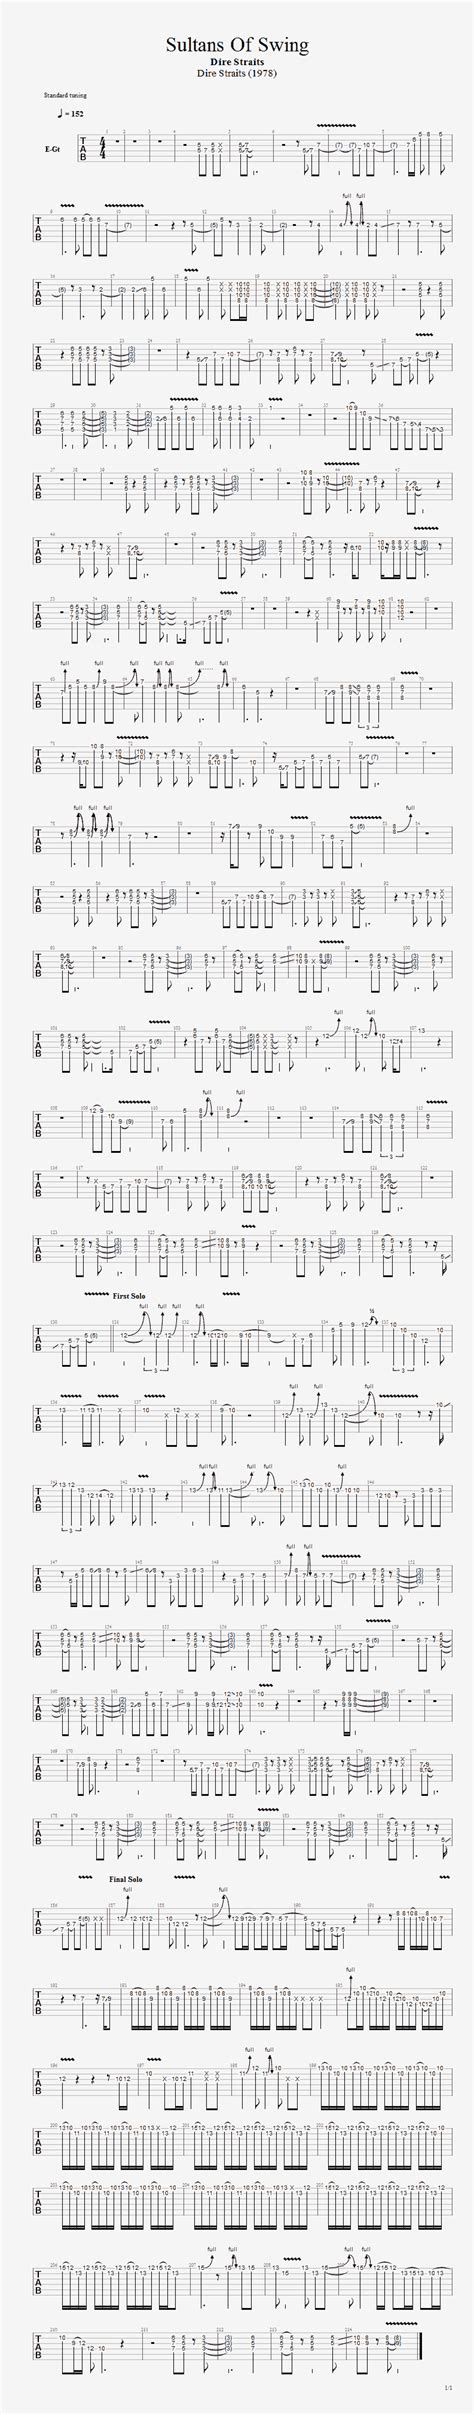 dire straits sultans of swing chords sultans of swing chords